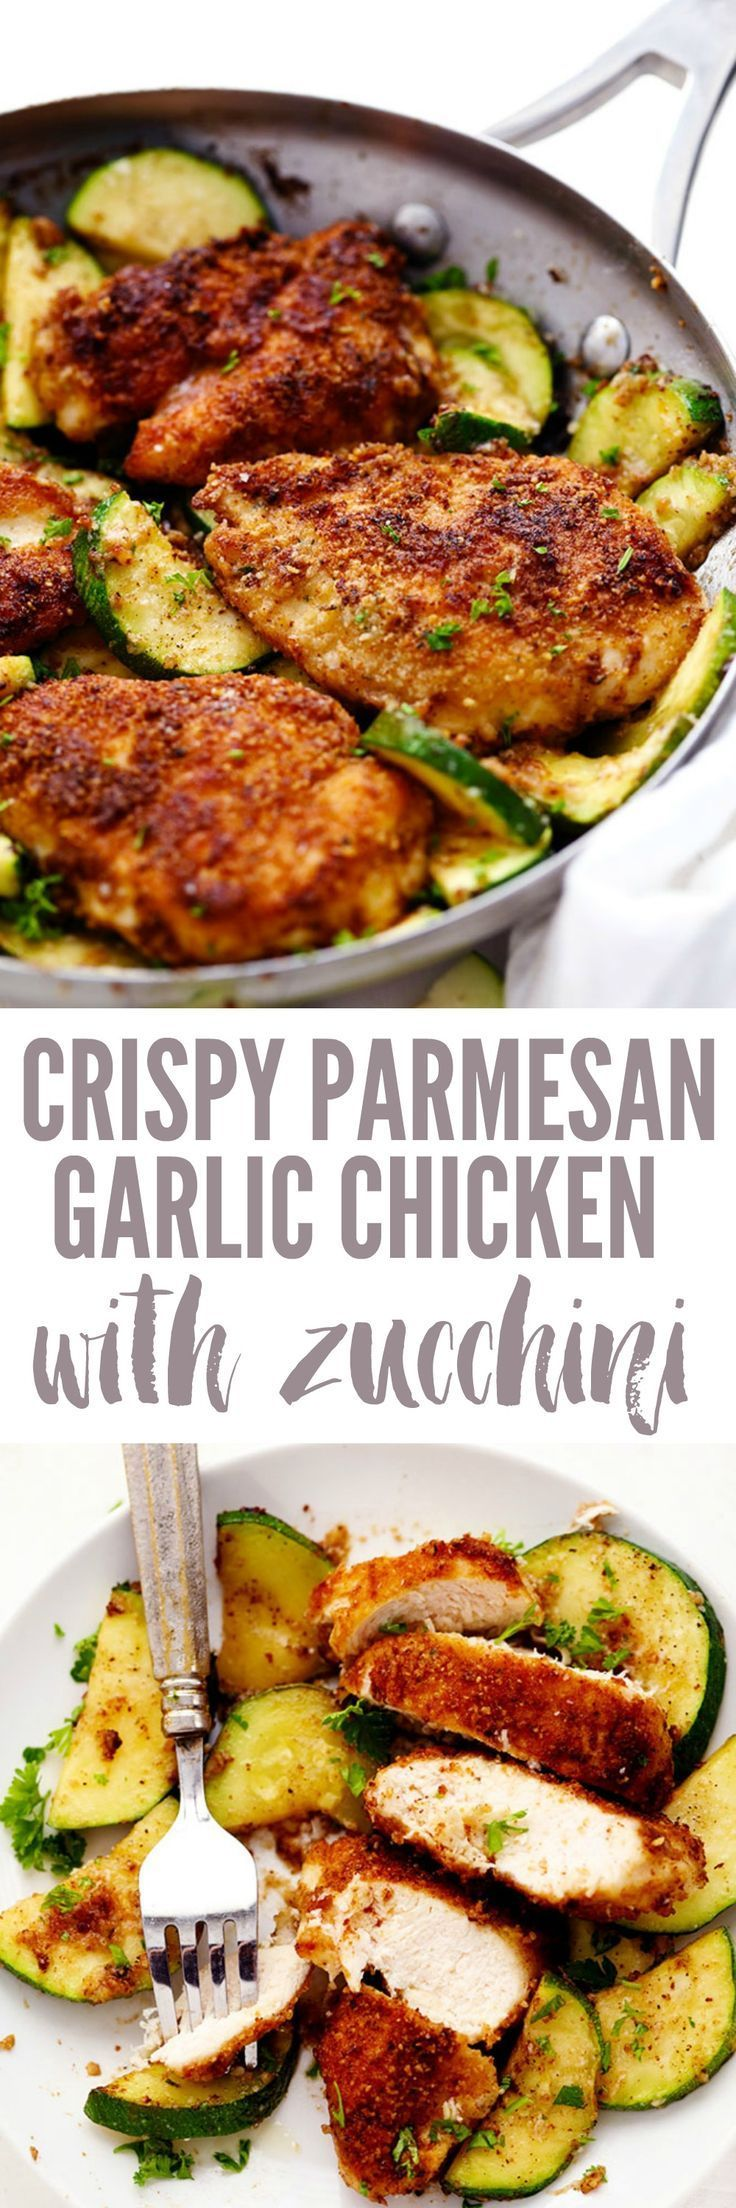 Crispy Parmesan Garlic Chicken with Zucchini is a fantastic one pan meal that the family will love! The chicken is so tender and breaded with an amazing parmesa